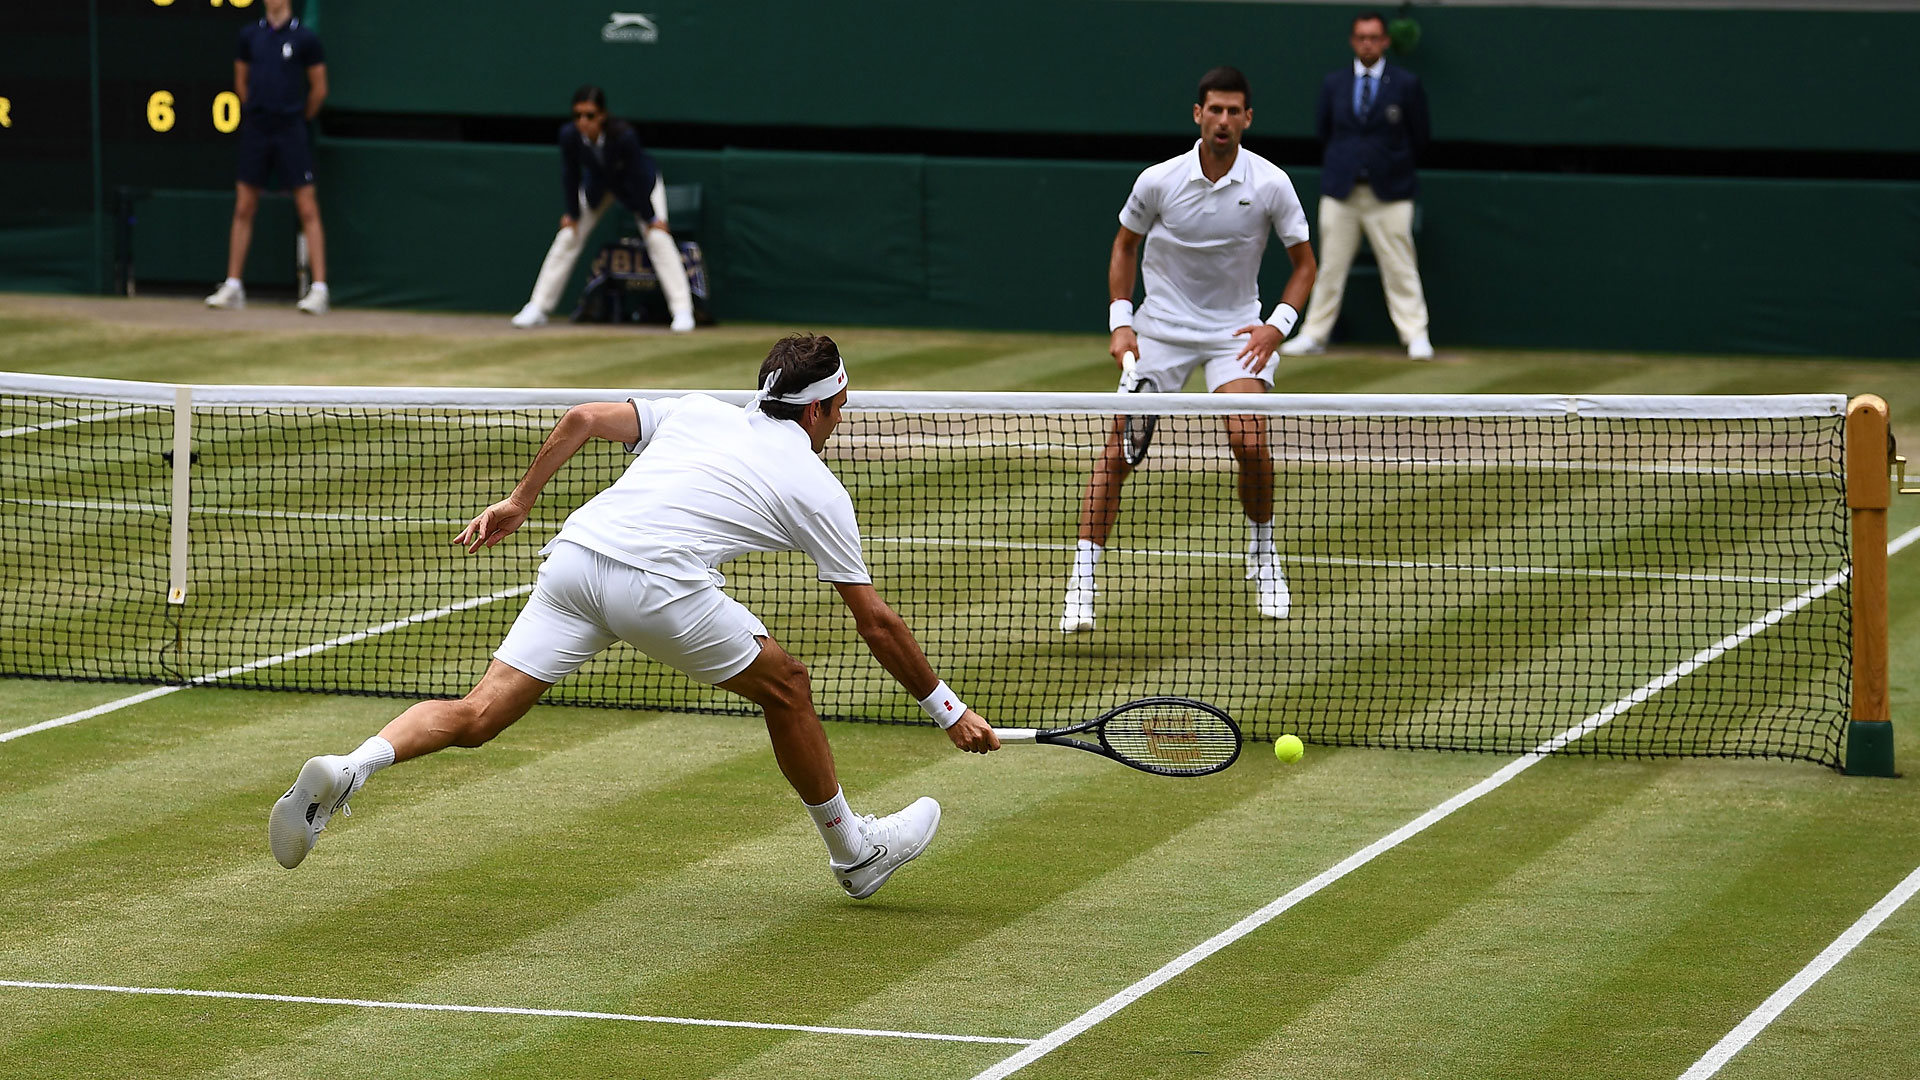 Wimbledon 2019: our complete guide, including how to get tickets